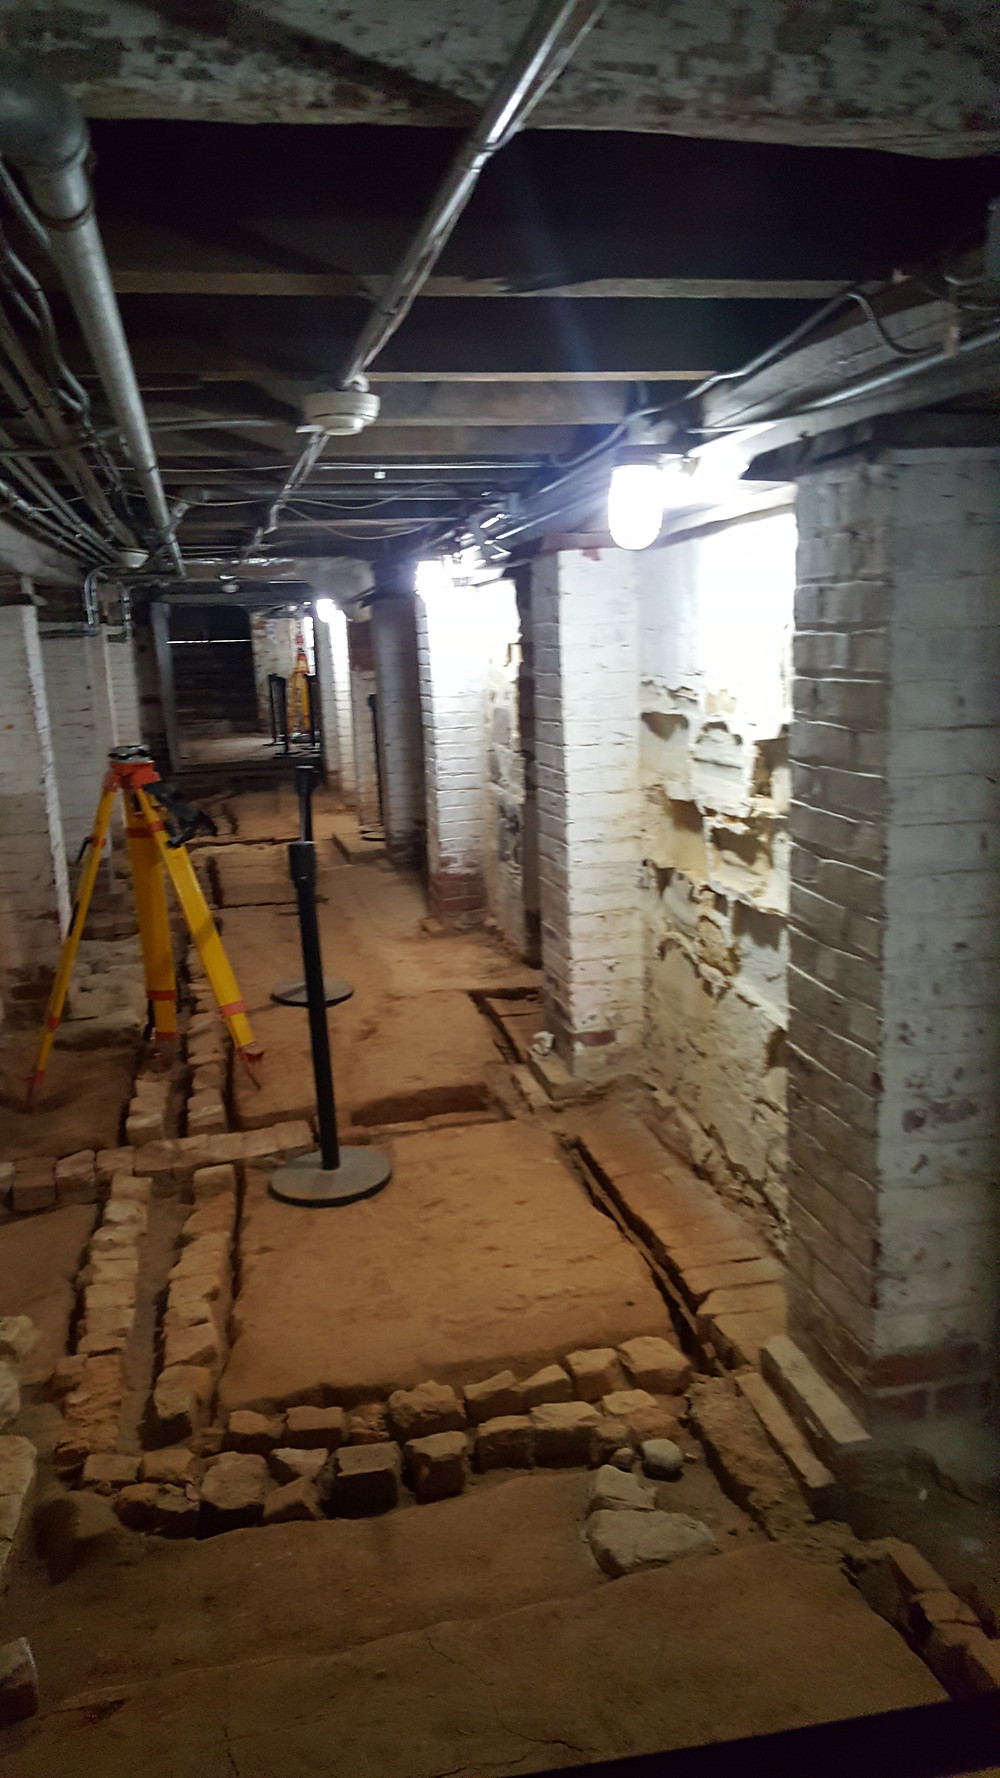 The Basement of MV. Part of the National Treasure tour.